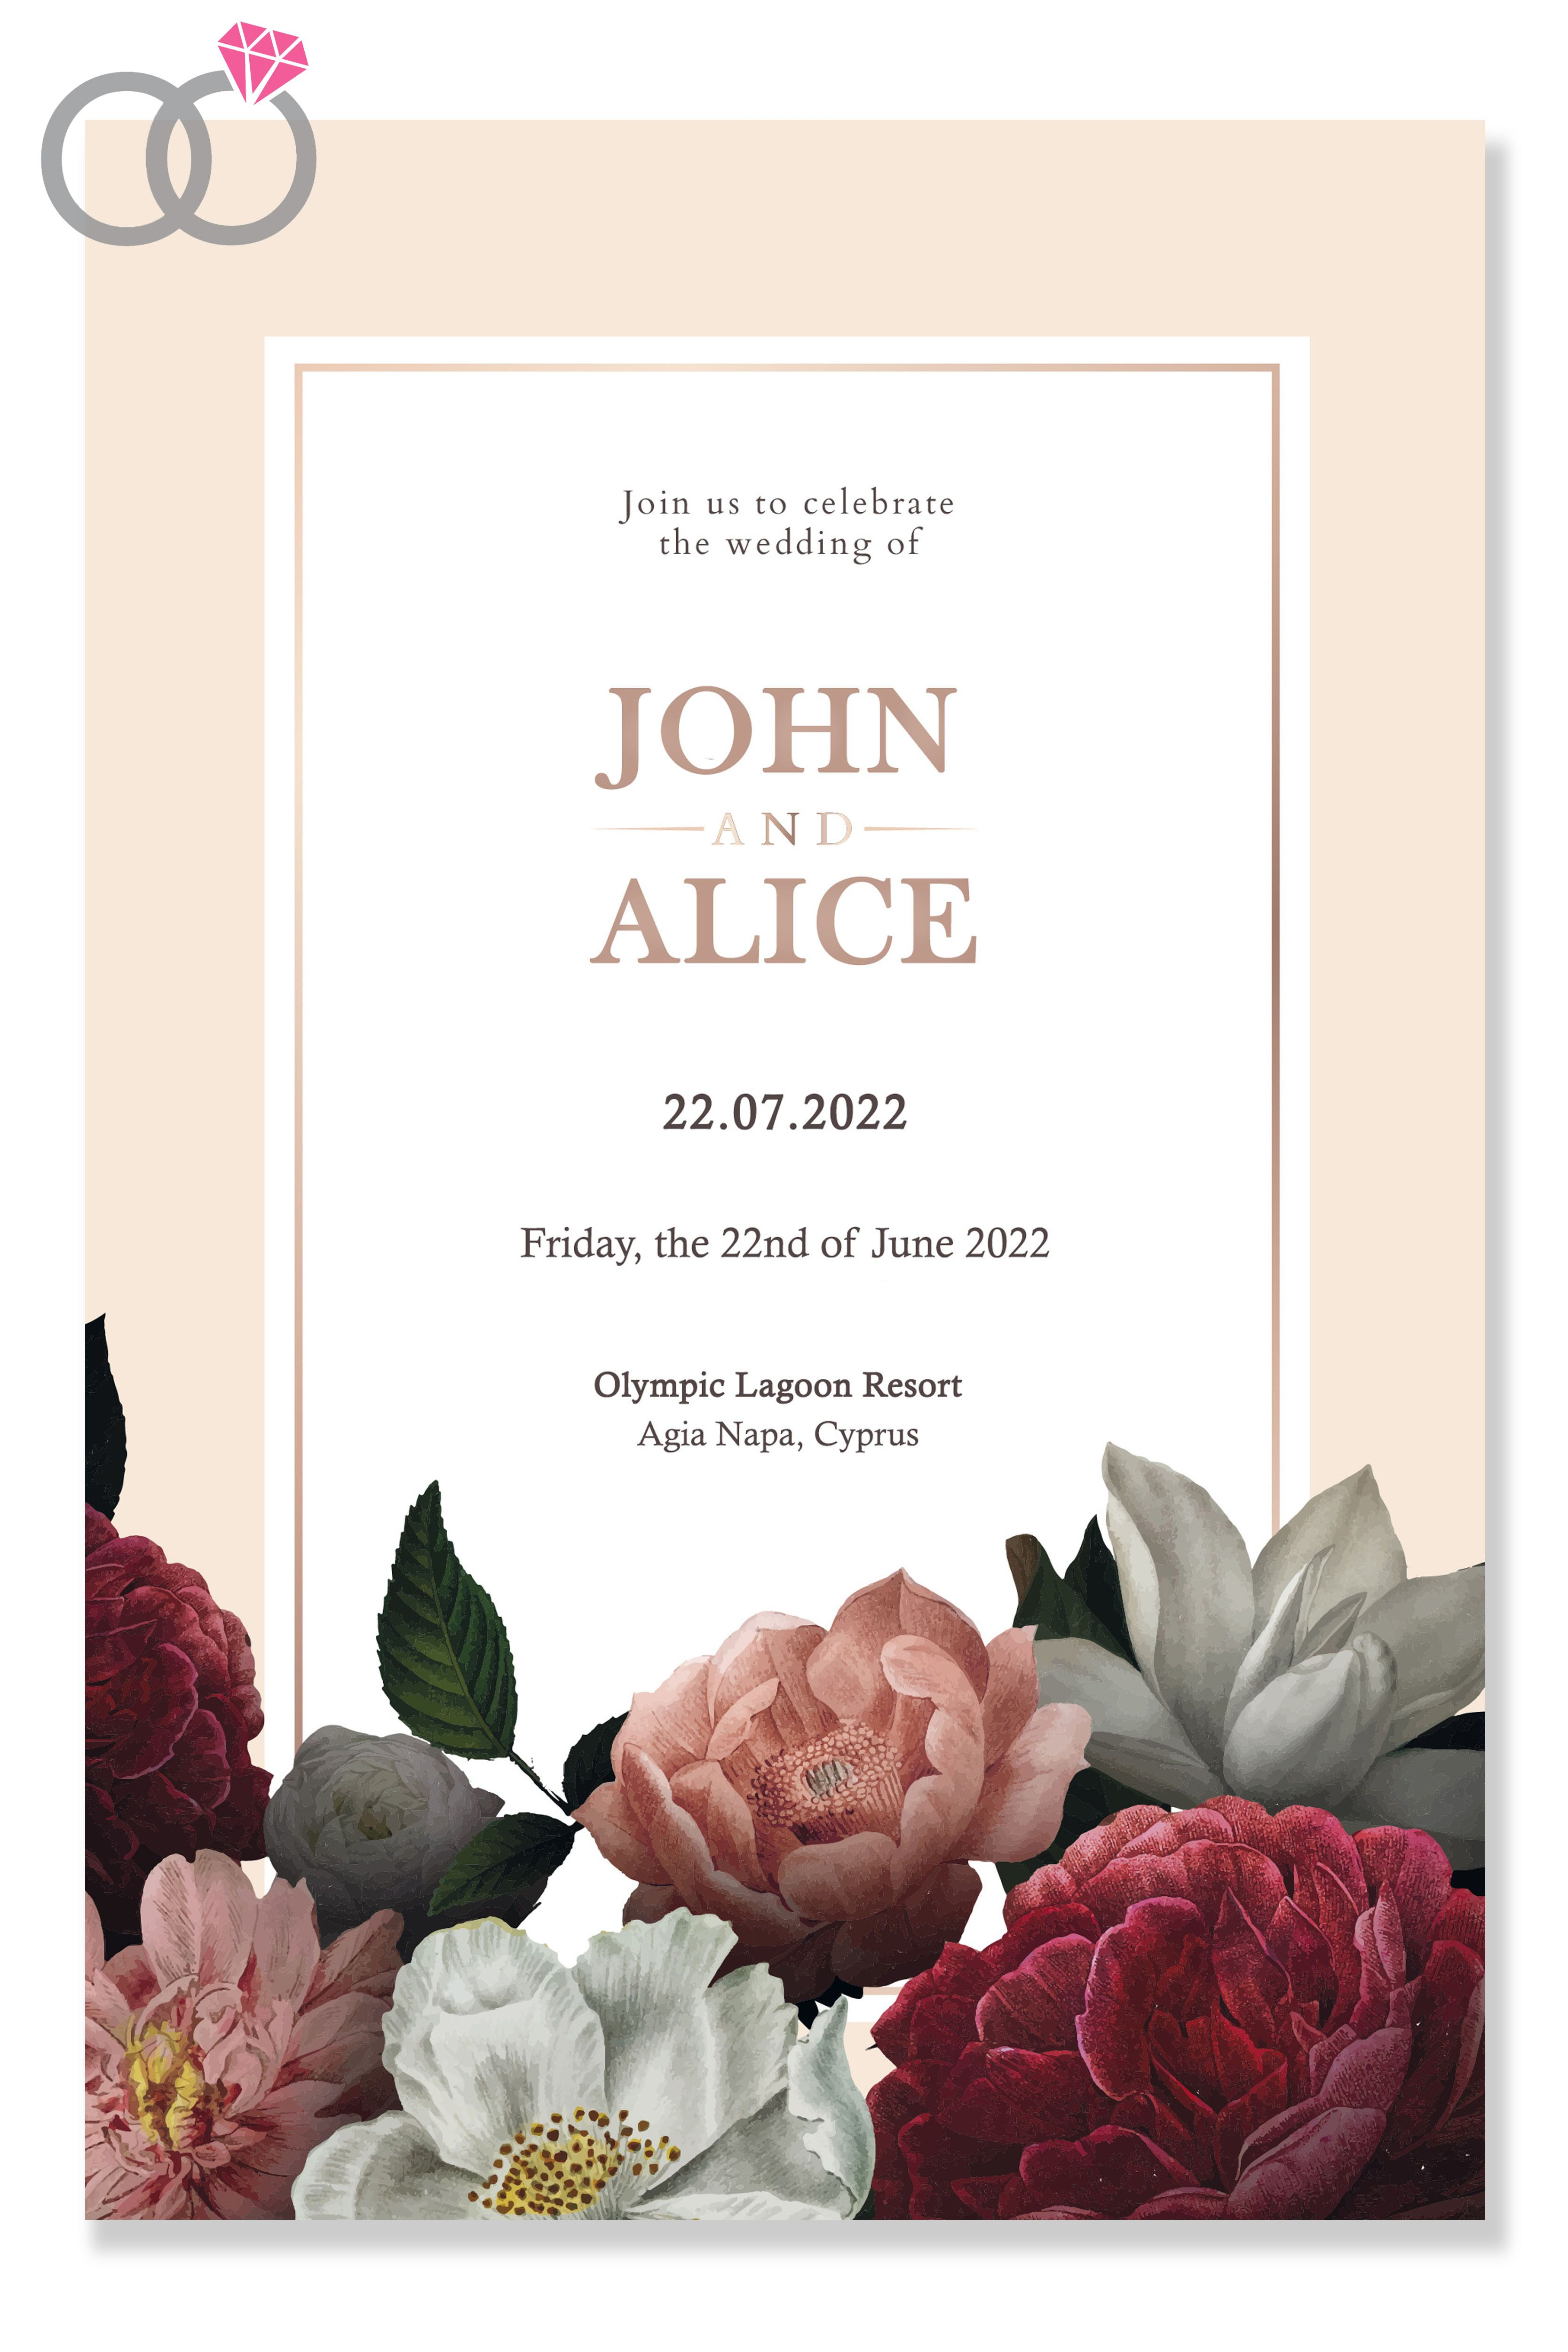 Pin on BYWD SAVE THE DATE CARDS INSPIRATION